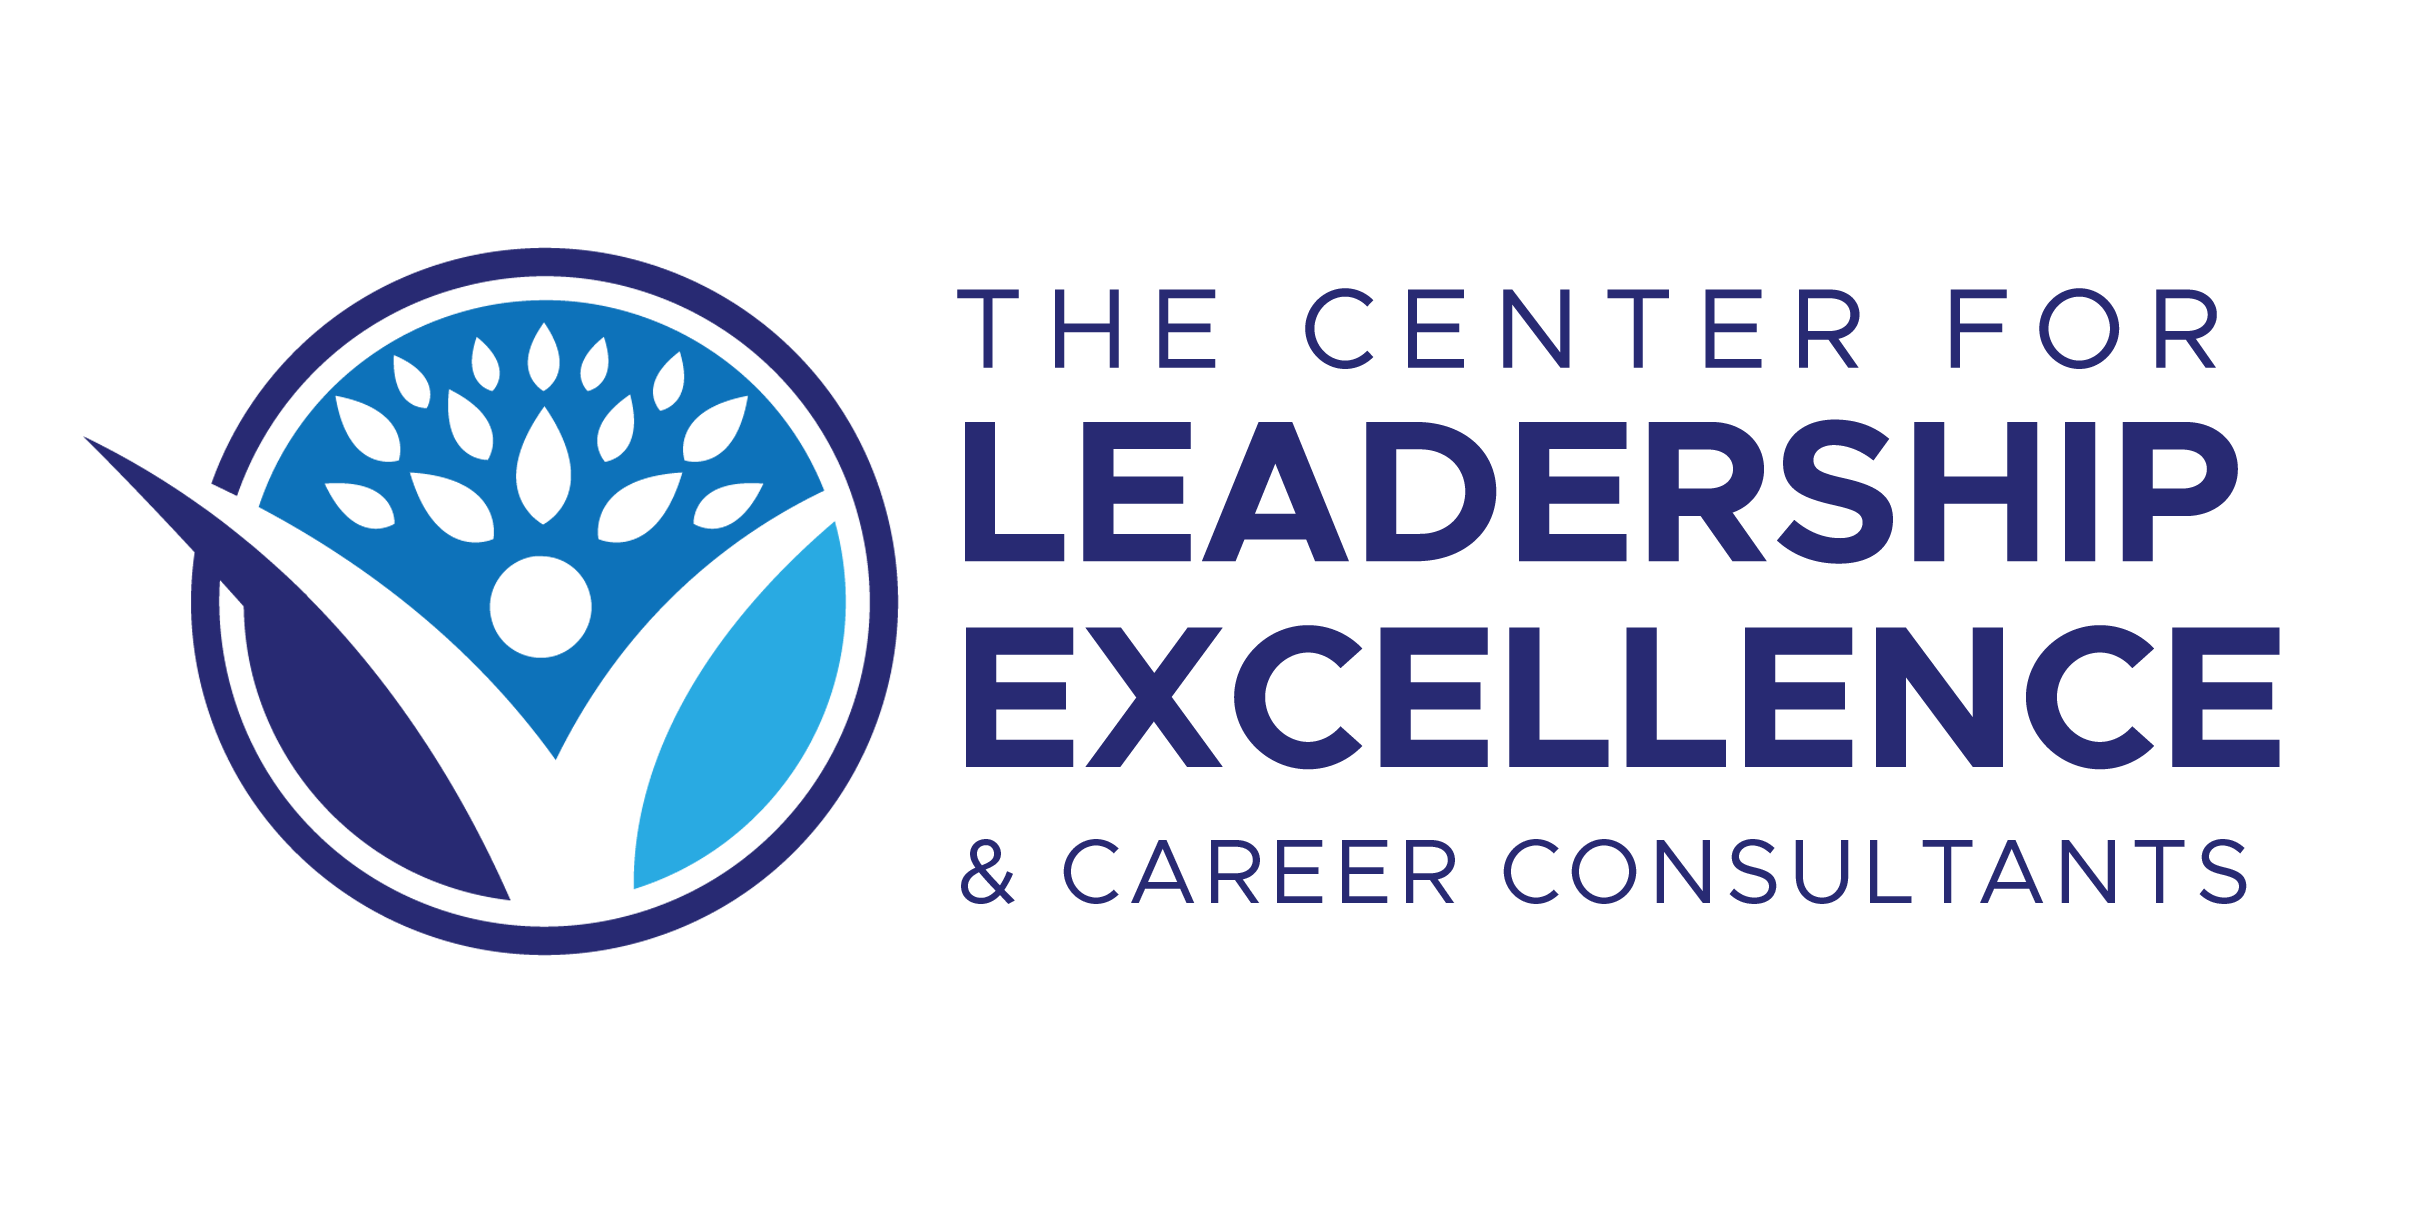 Th Center for Leadership Excellence